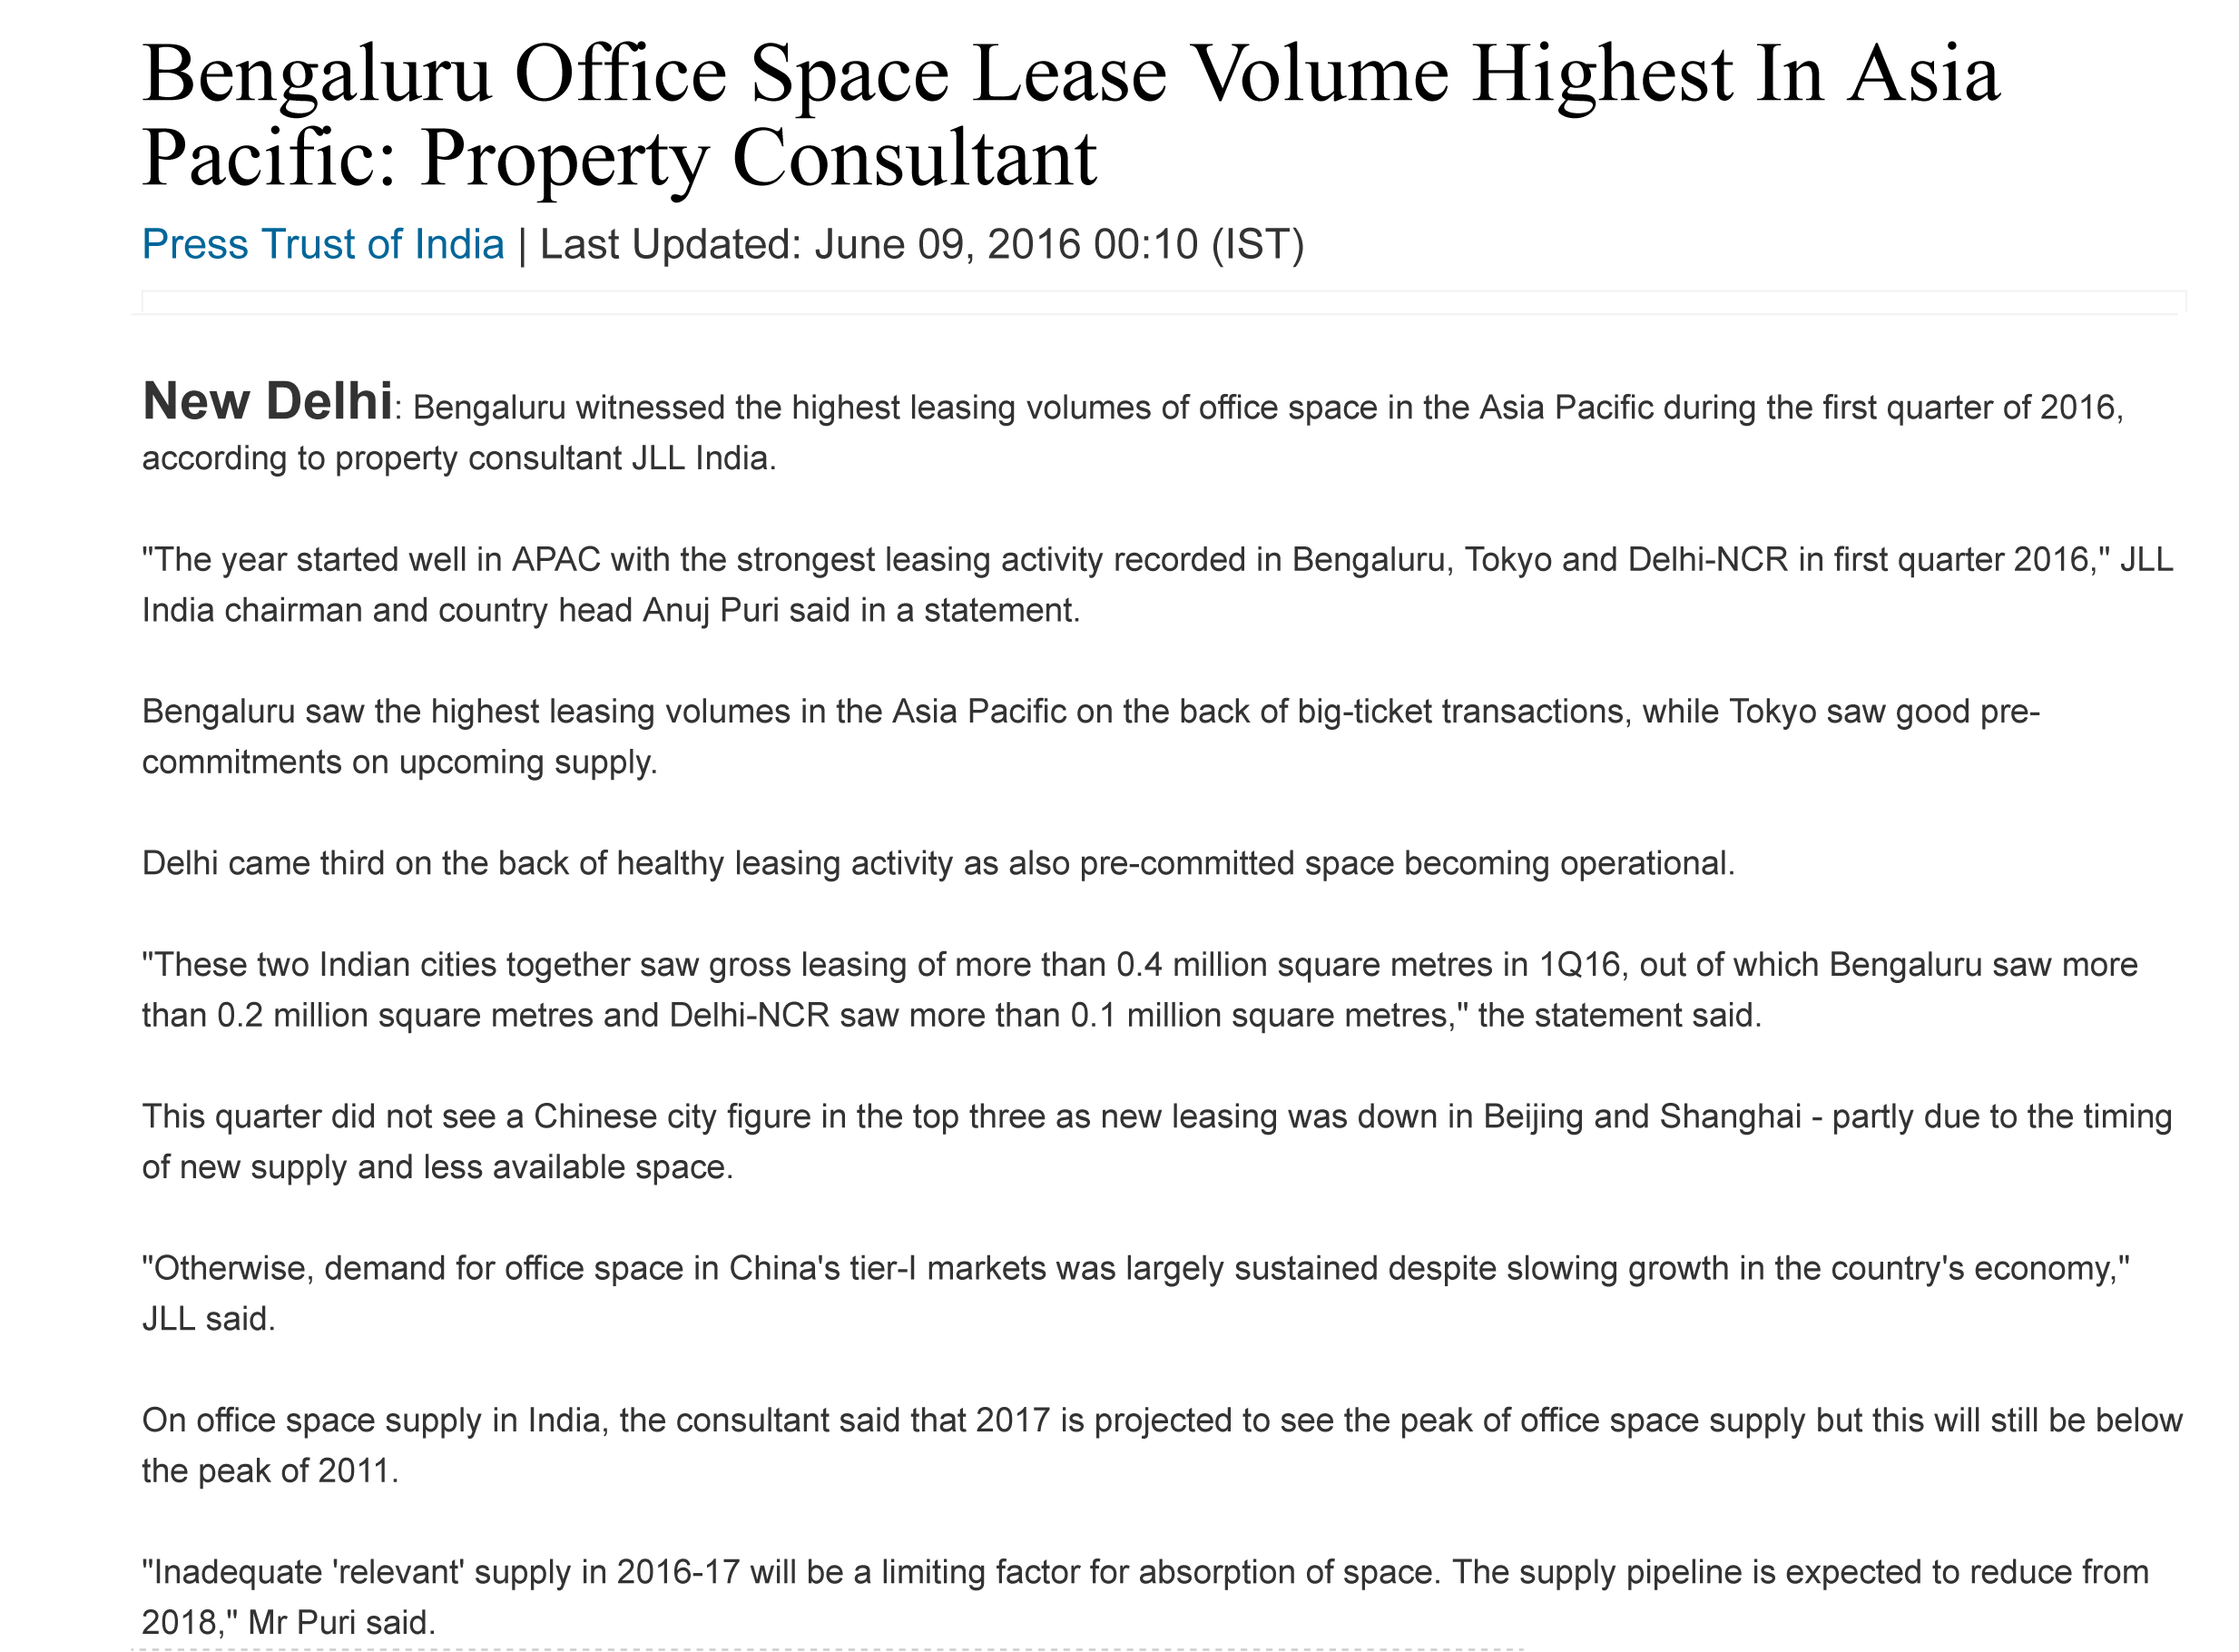 Bengaluru Office Space Lease Volume Highest In Asia Pacific